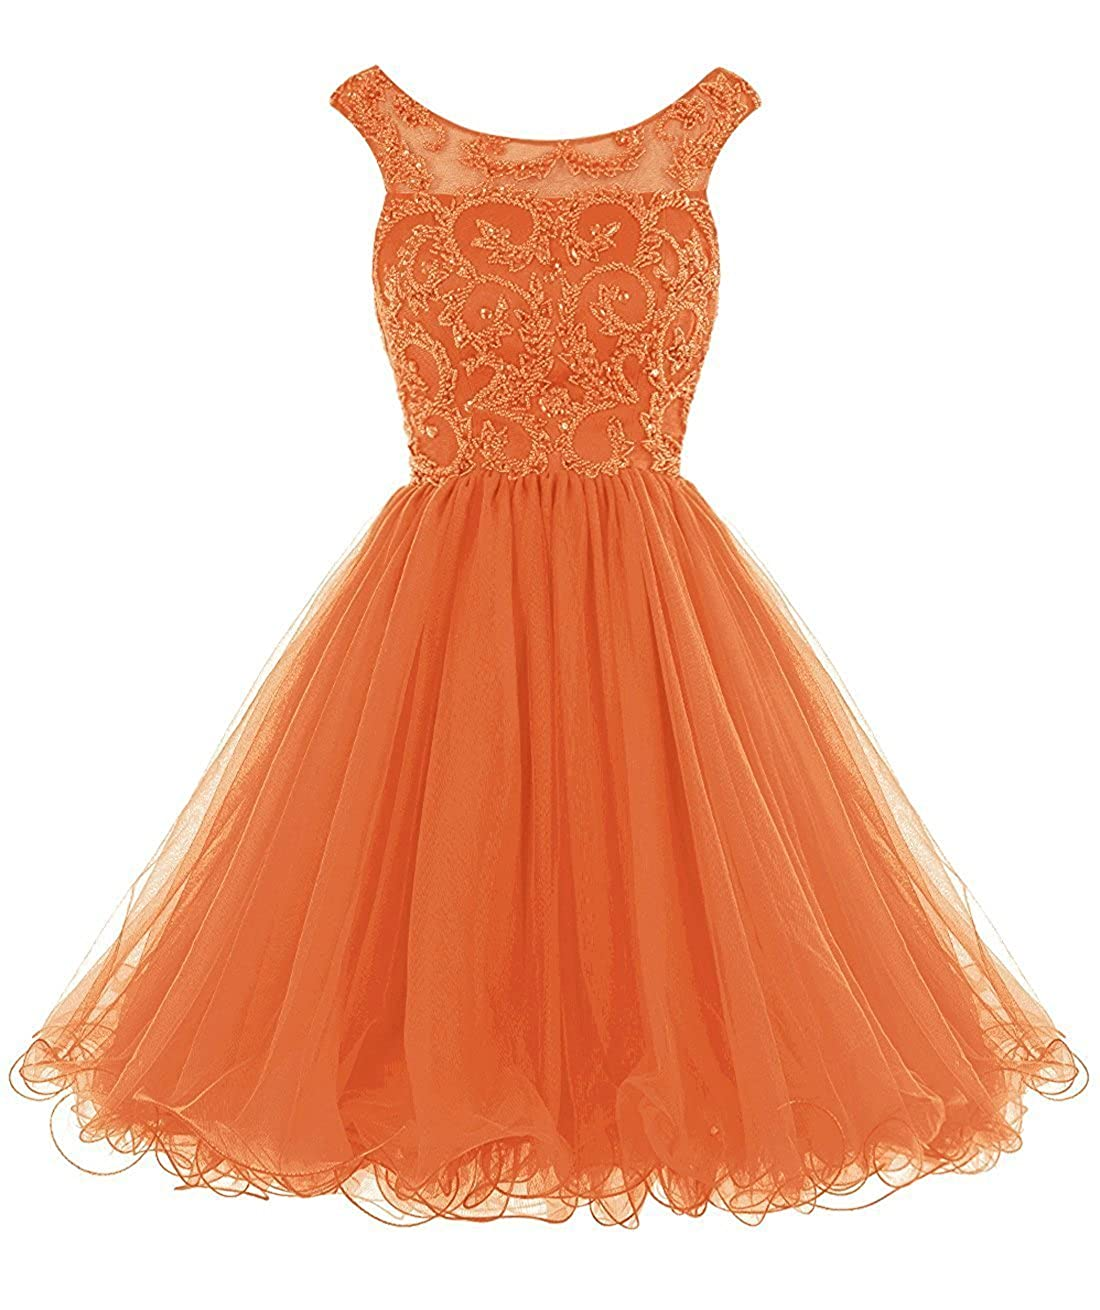 orange Caissen Women's Short Ball Gown Illusion Scoop Neck Beading Rhinestones Tulle Prom Dress V Back with Zipper Party Wear